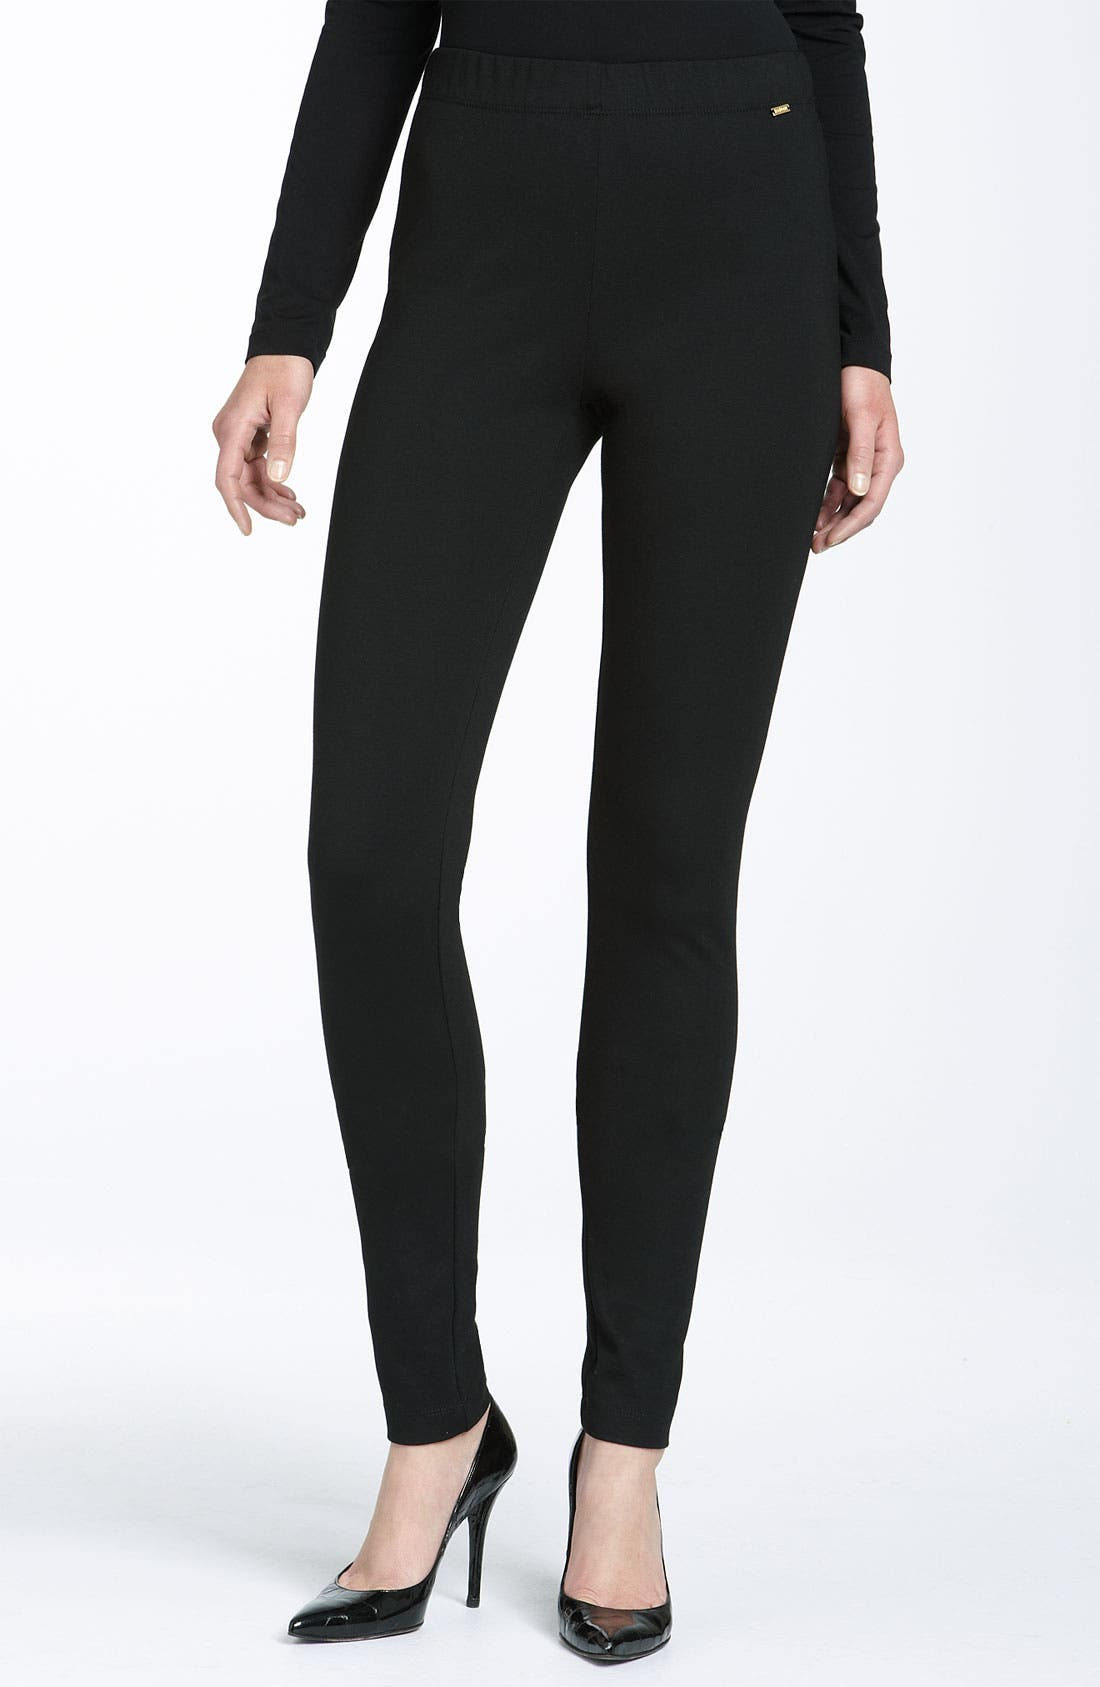 Main Image - St. John Yellow Label Leggings